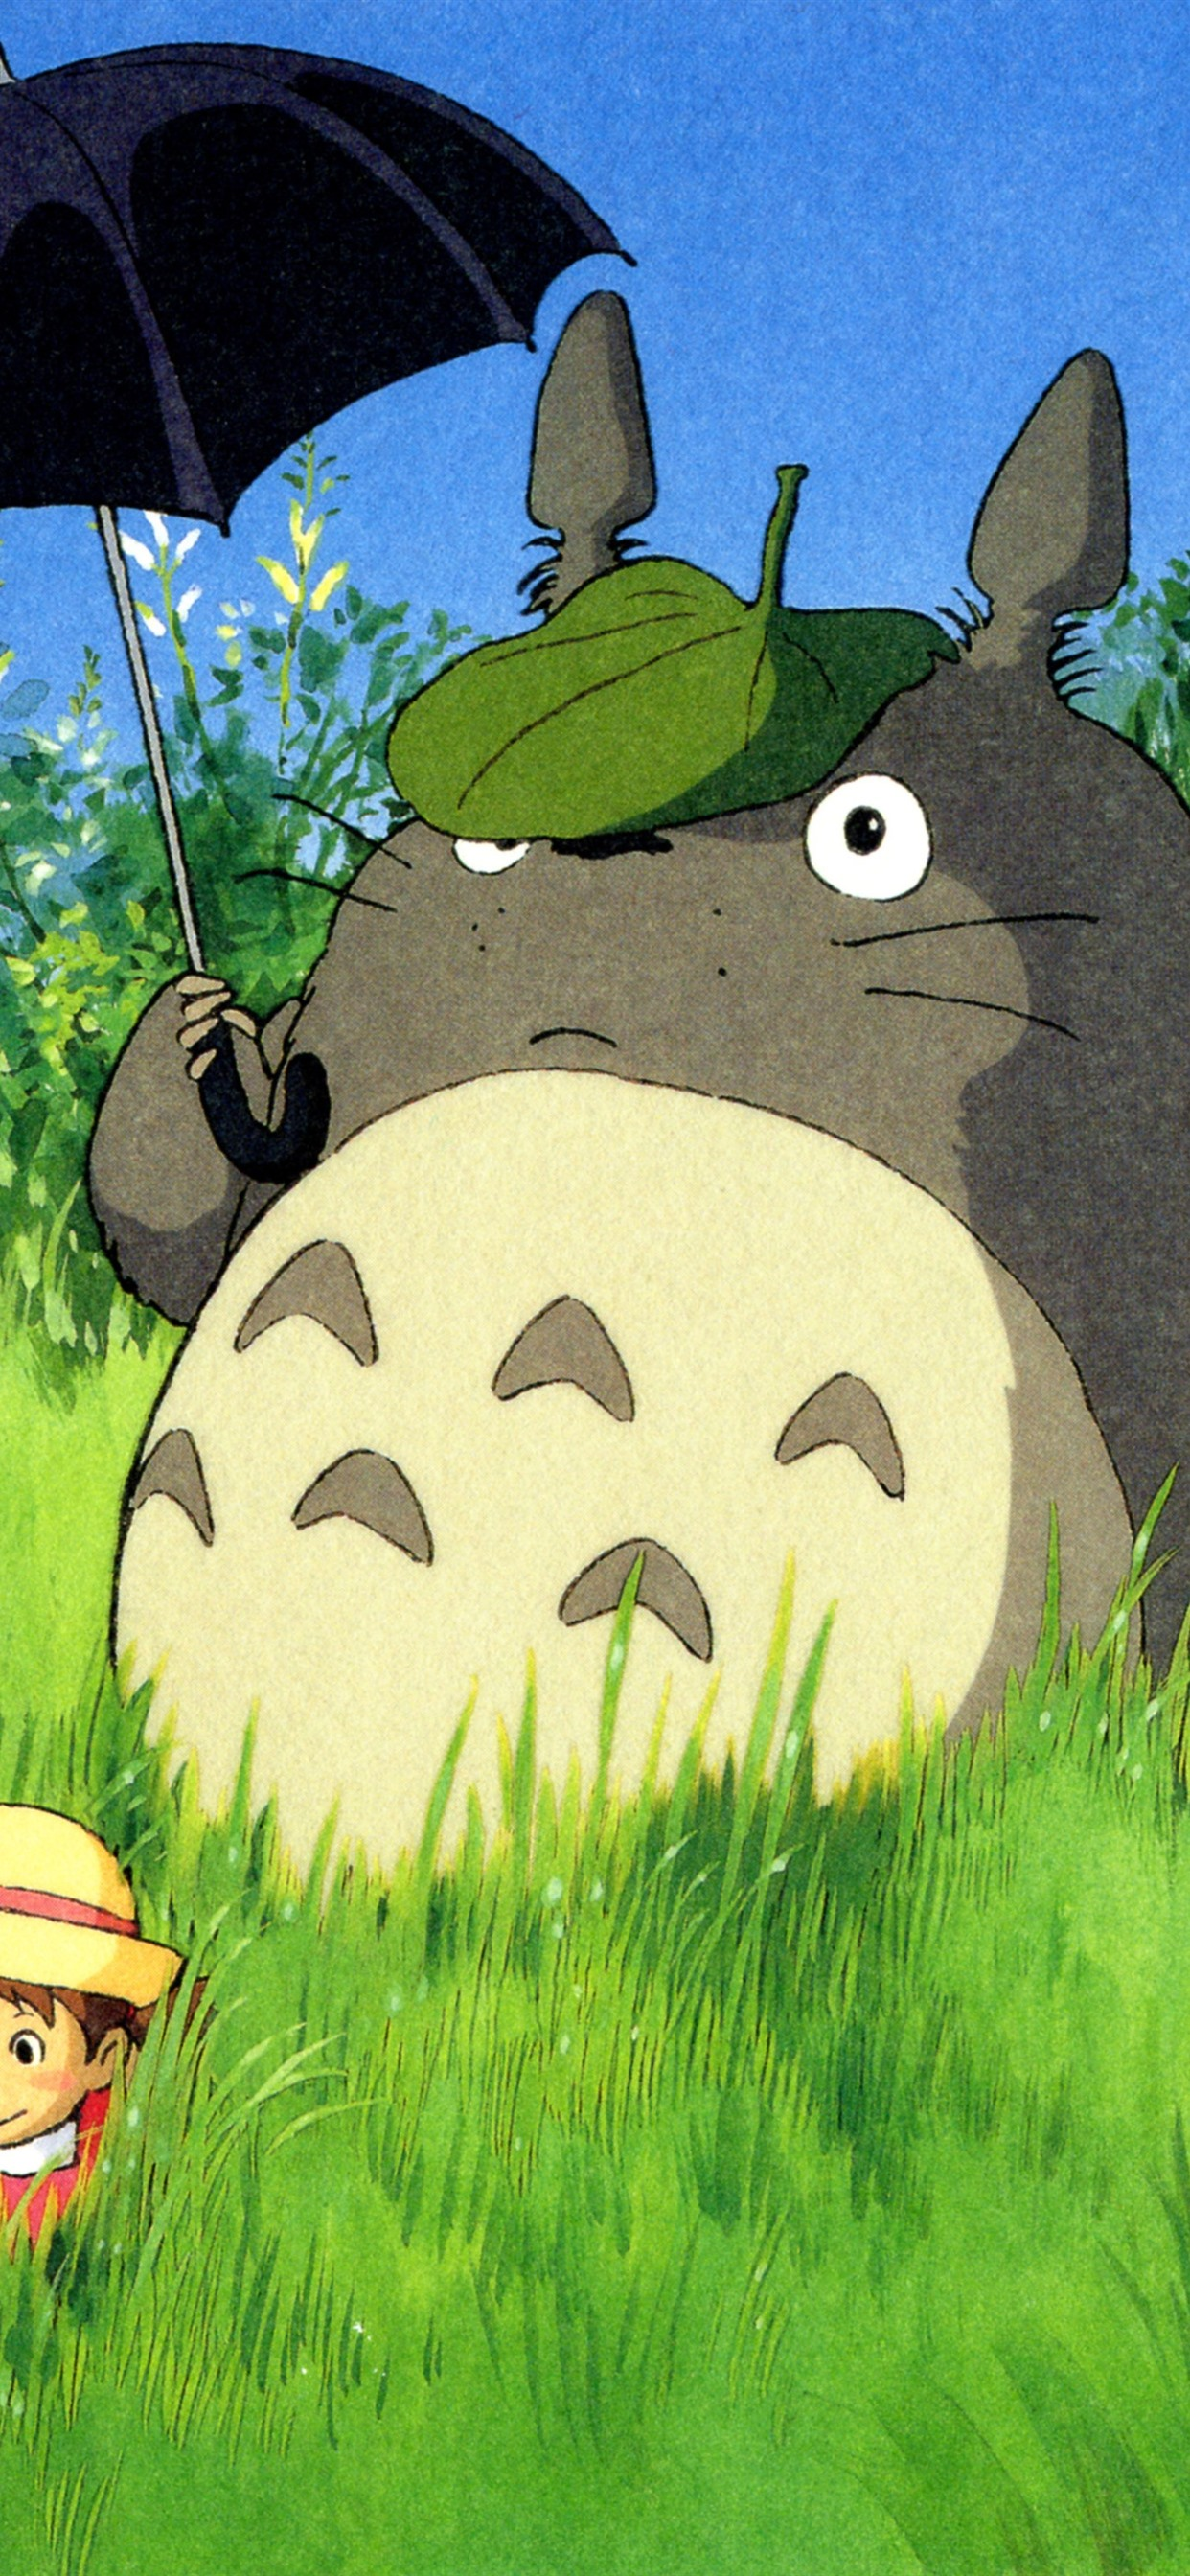 My Neighbor Totoro Classic Anime 1242x2688 Iphone 11 Pro Xs Max Wallpaper Background Picture Image